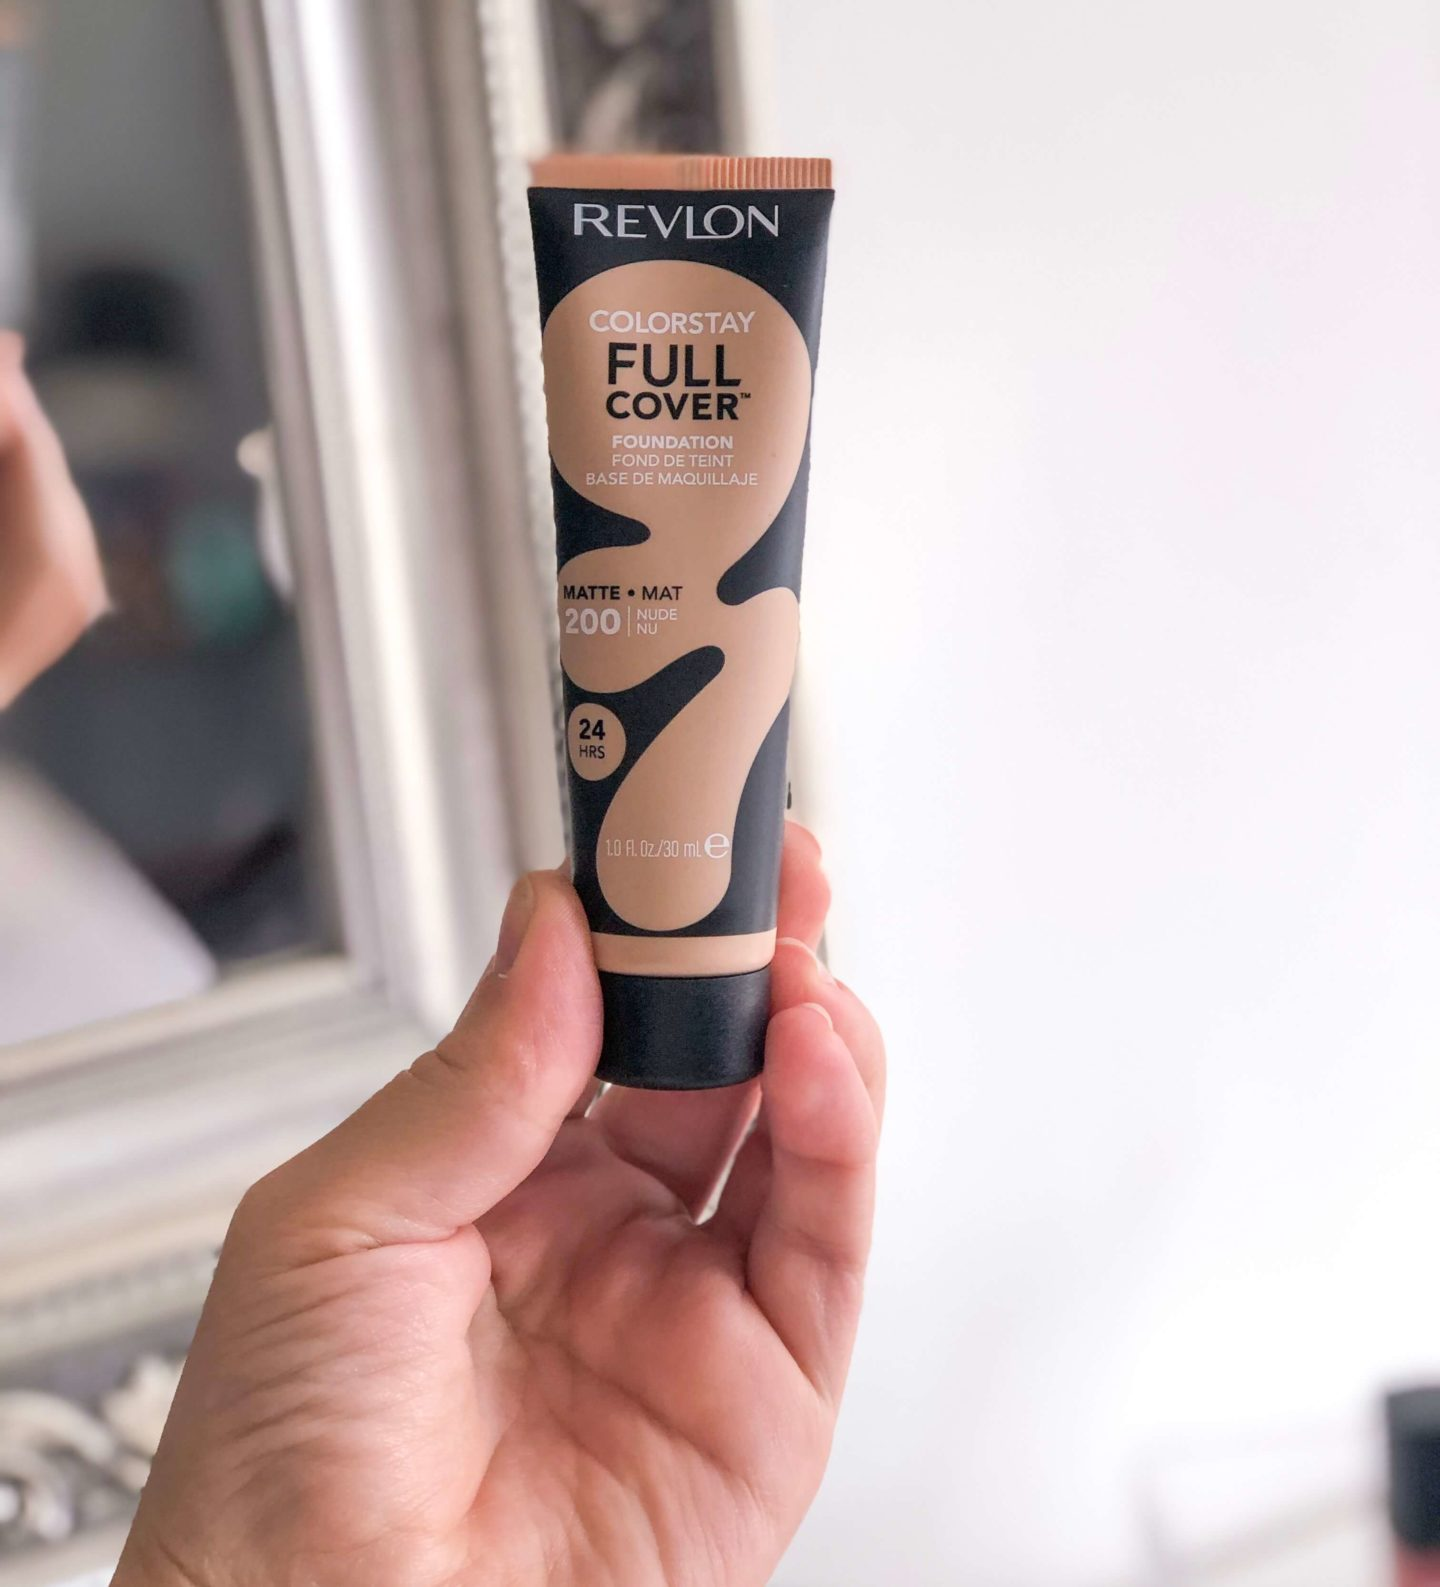 Revlon Full Cover Colorstay sincerely blonde